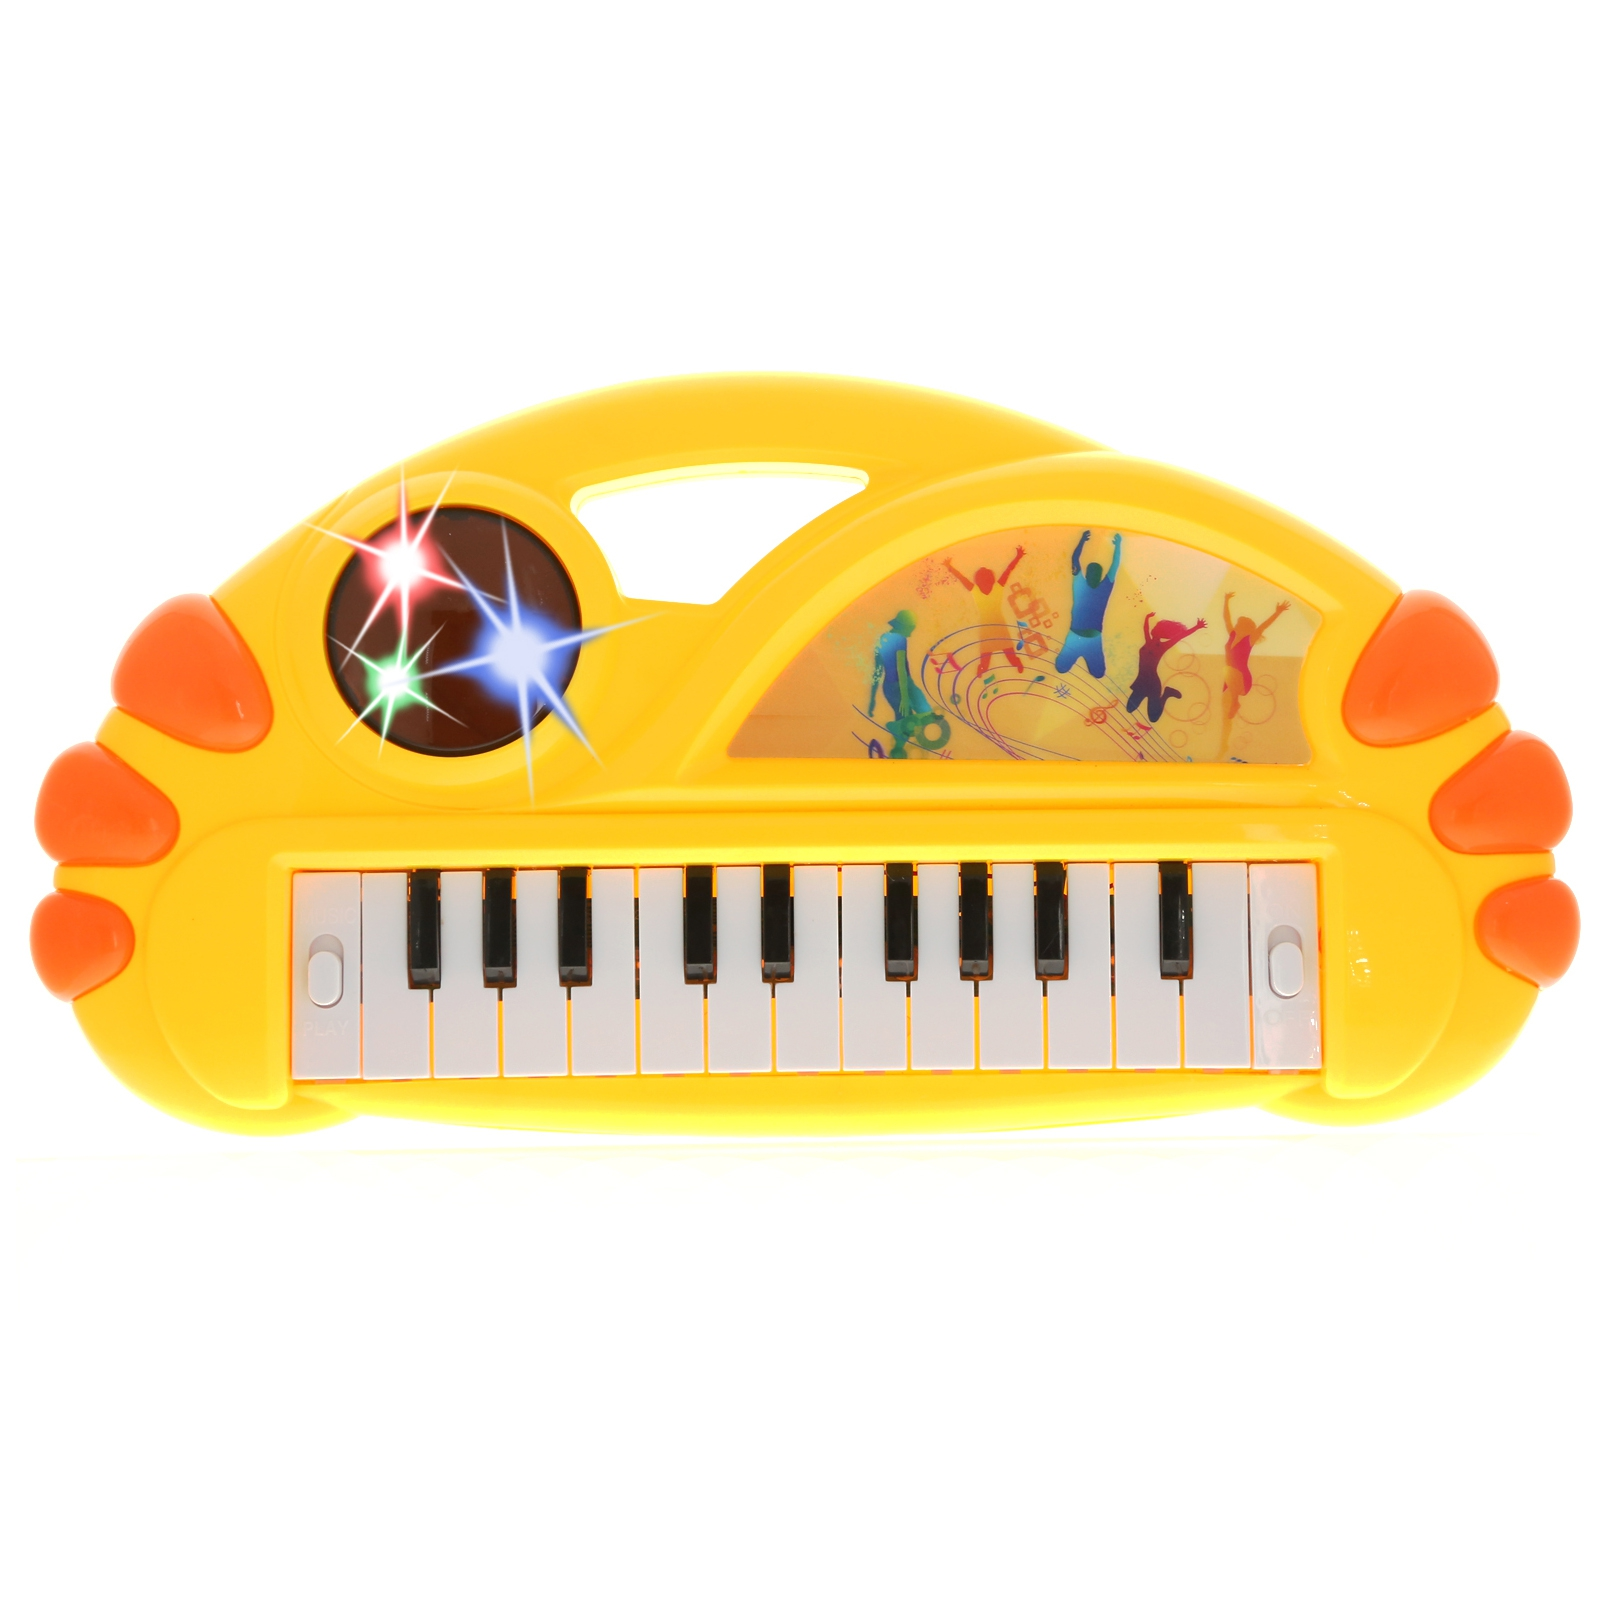 KidPlay Organ Musical Instrument Electronic Keyboard Kids Toy - Yellow